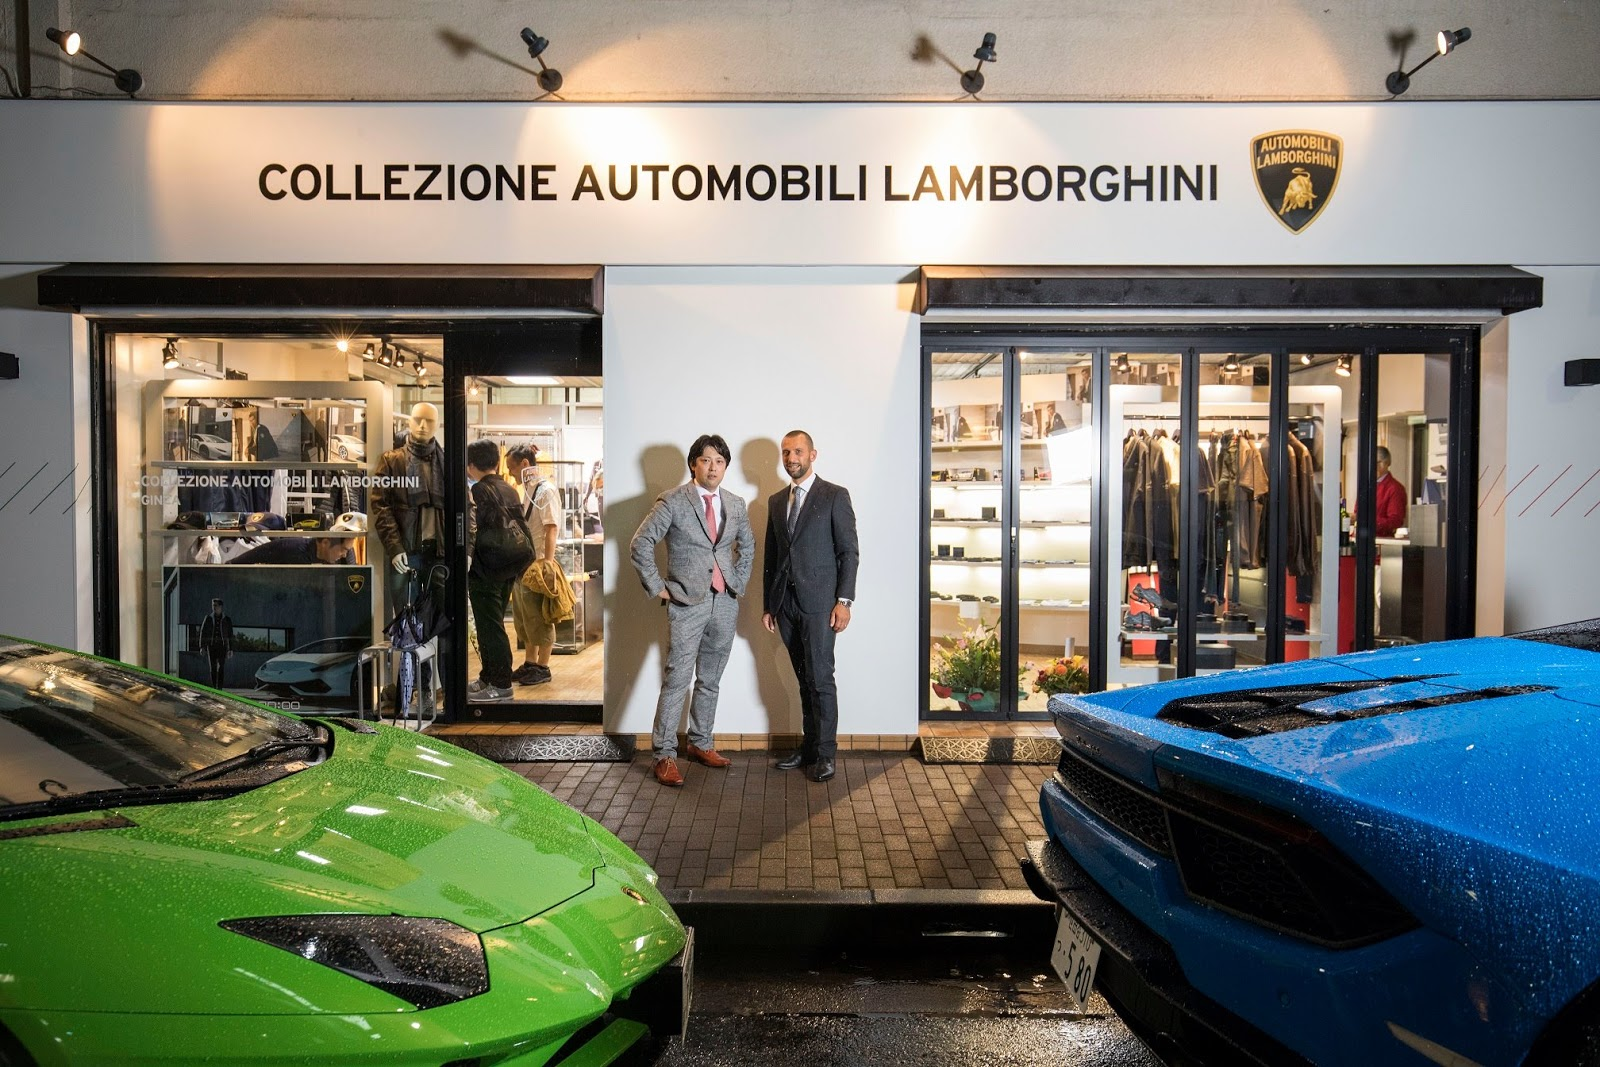 Lamborghini Opened Its First Official Collezione Automobili Lamborghini  Store In Ginza, Japan On 23 September 2017. The New Boutique Includes All  The Menu0027s ...